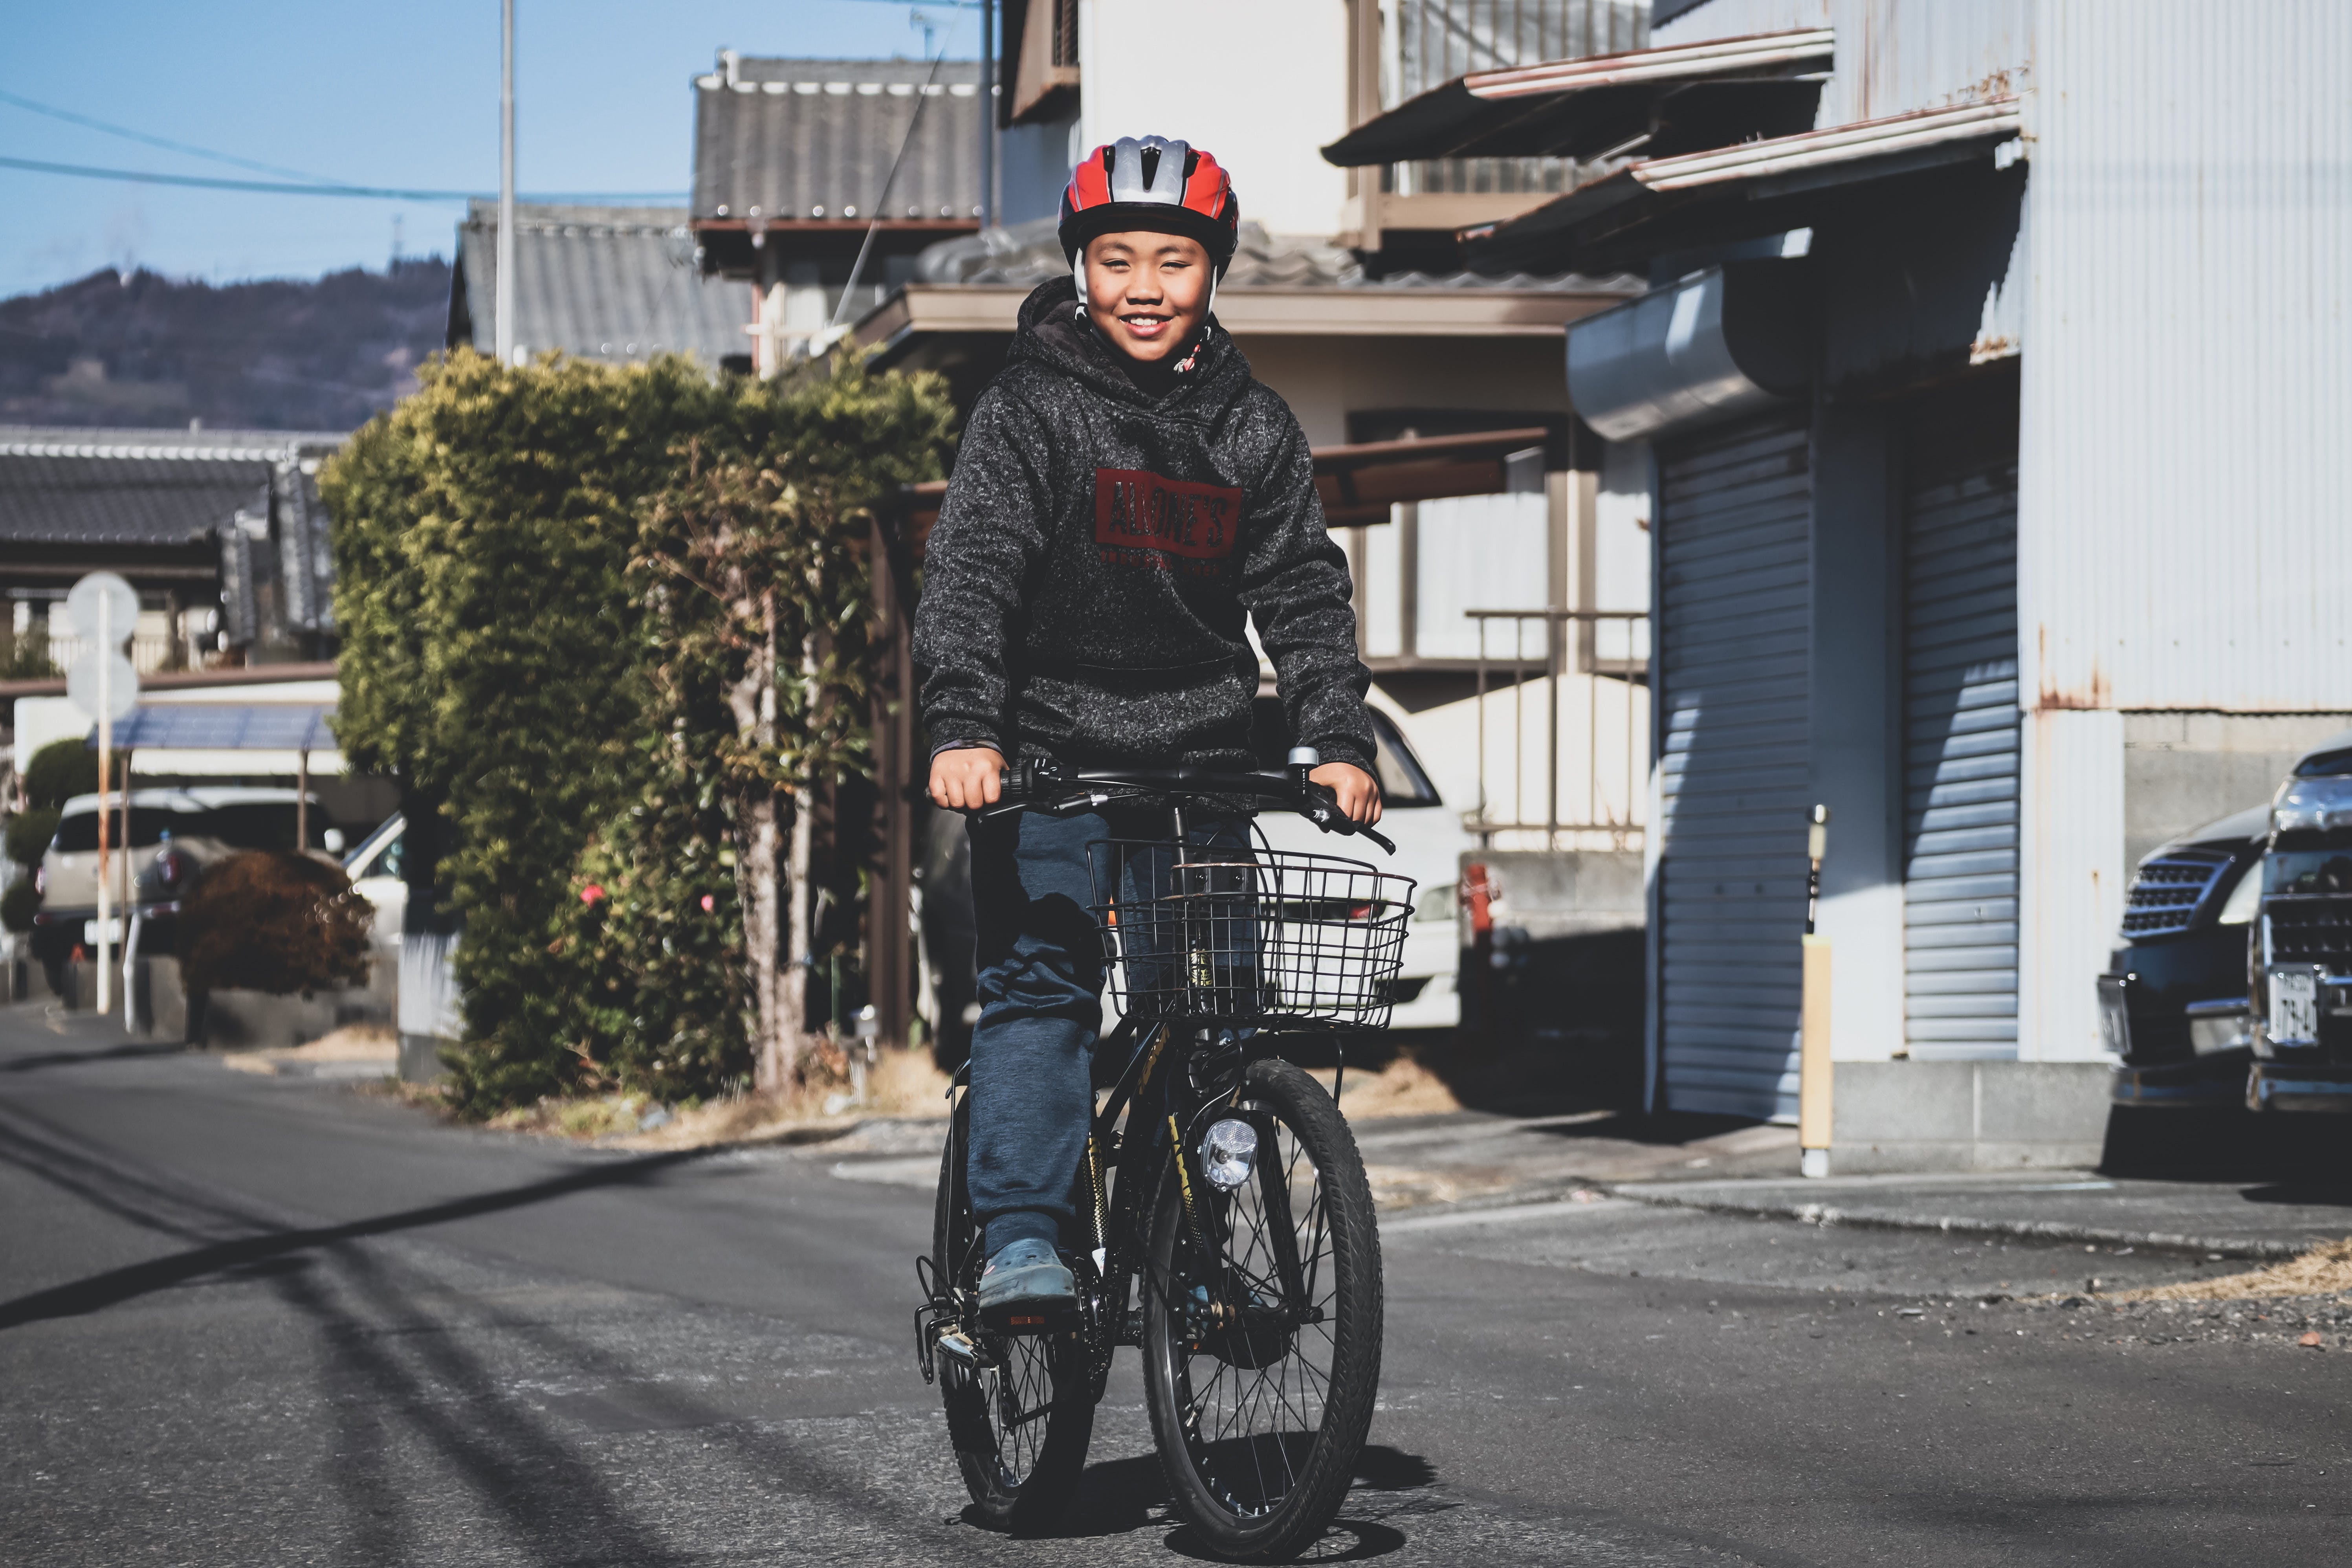 Photo of Woman Riding on Bicycle on Street